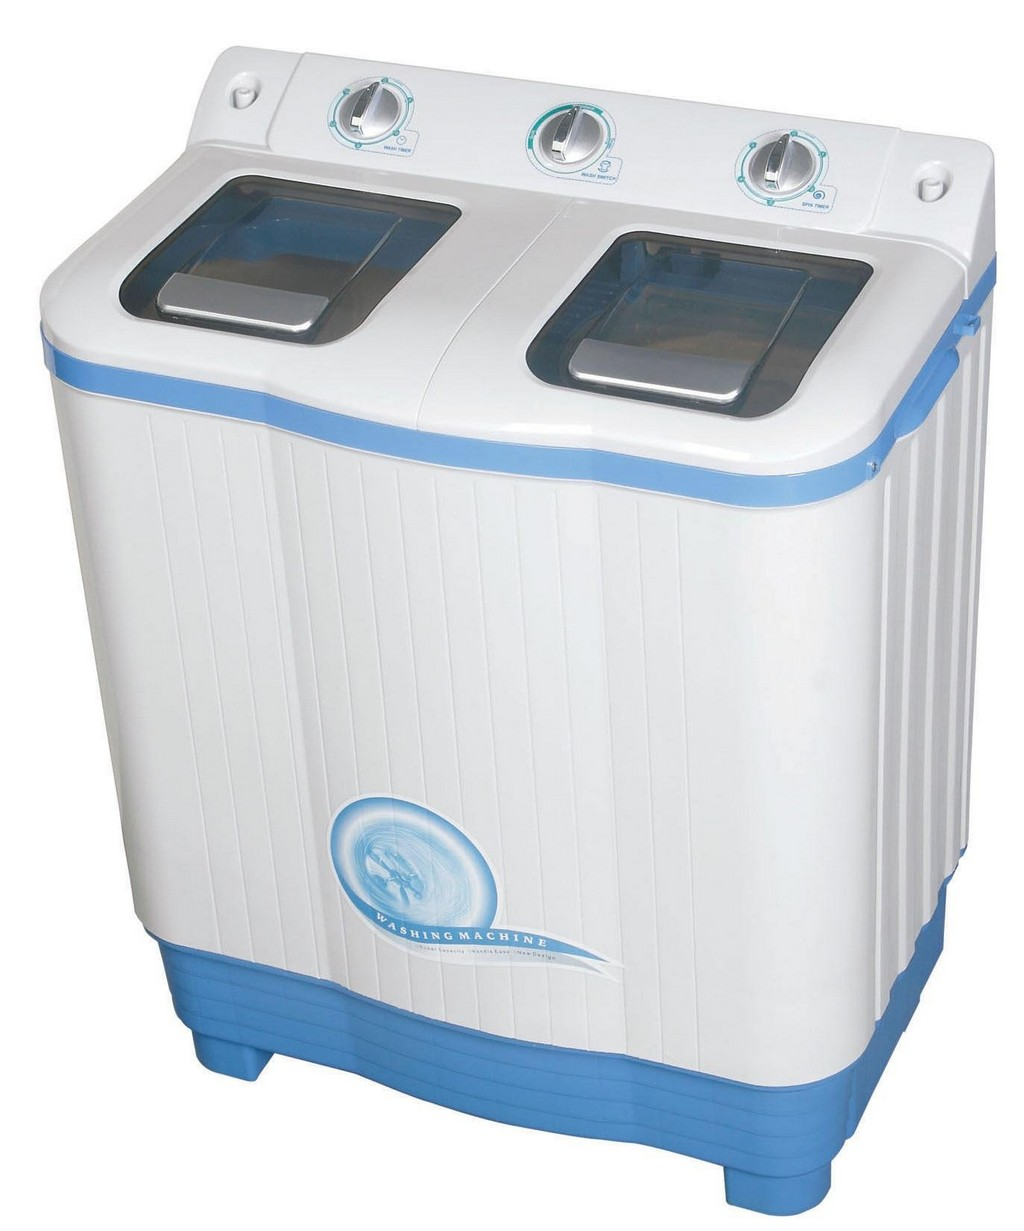 twin tub washing machine, 8kg washing machine, washing machine rental